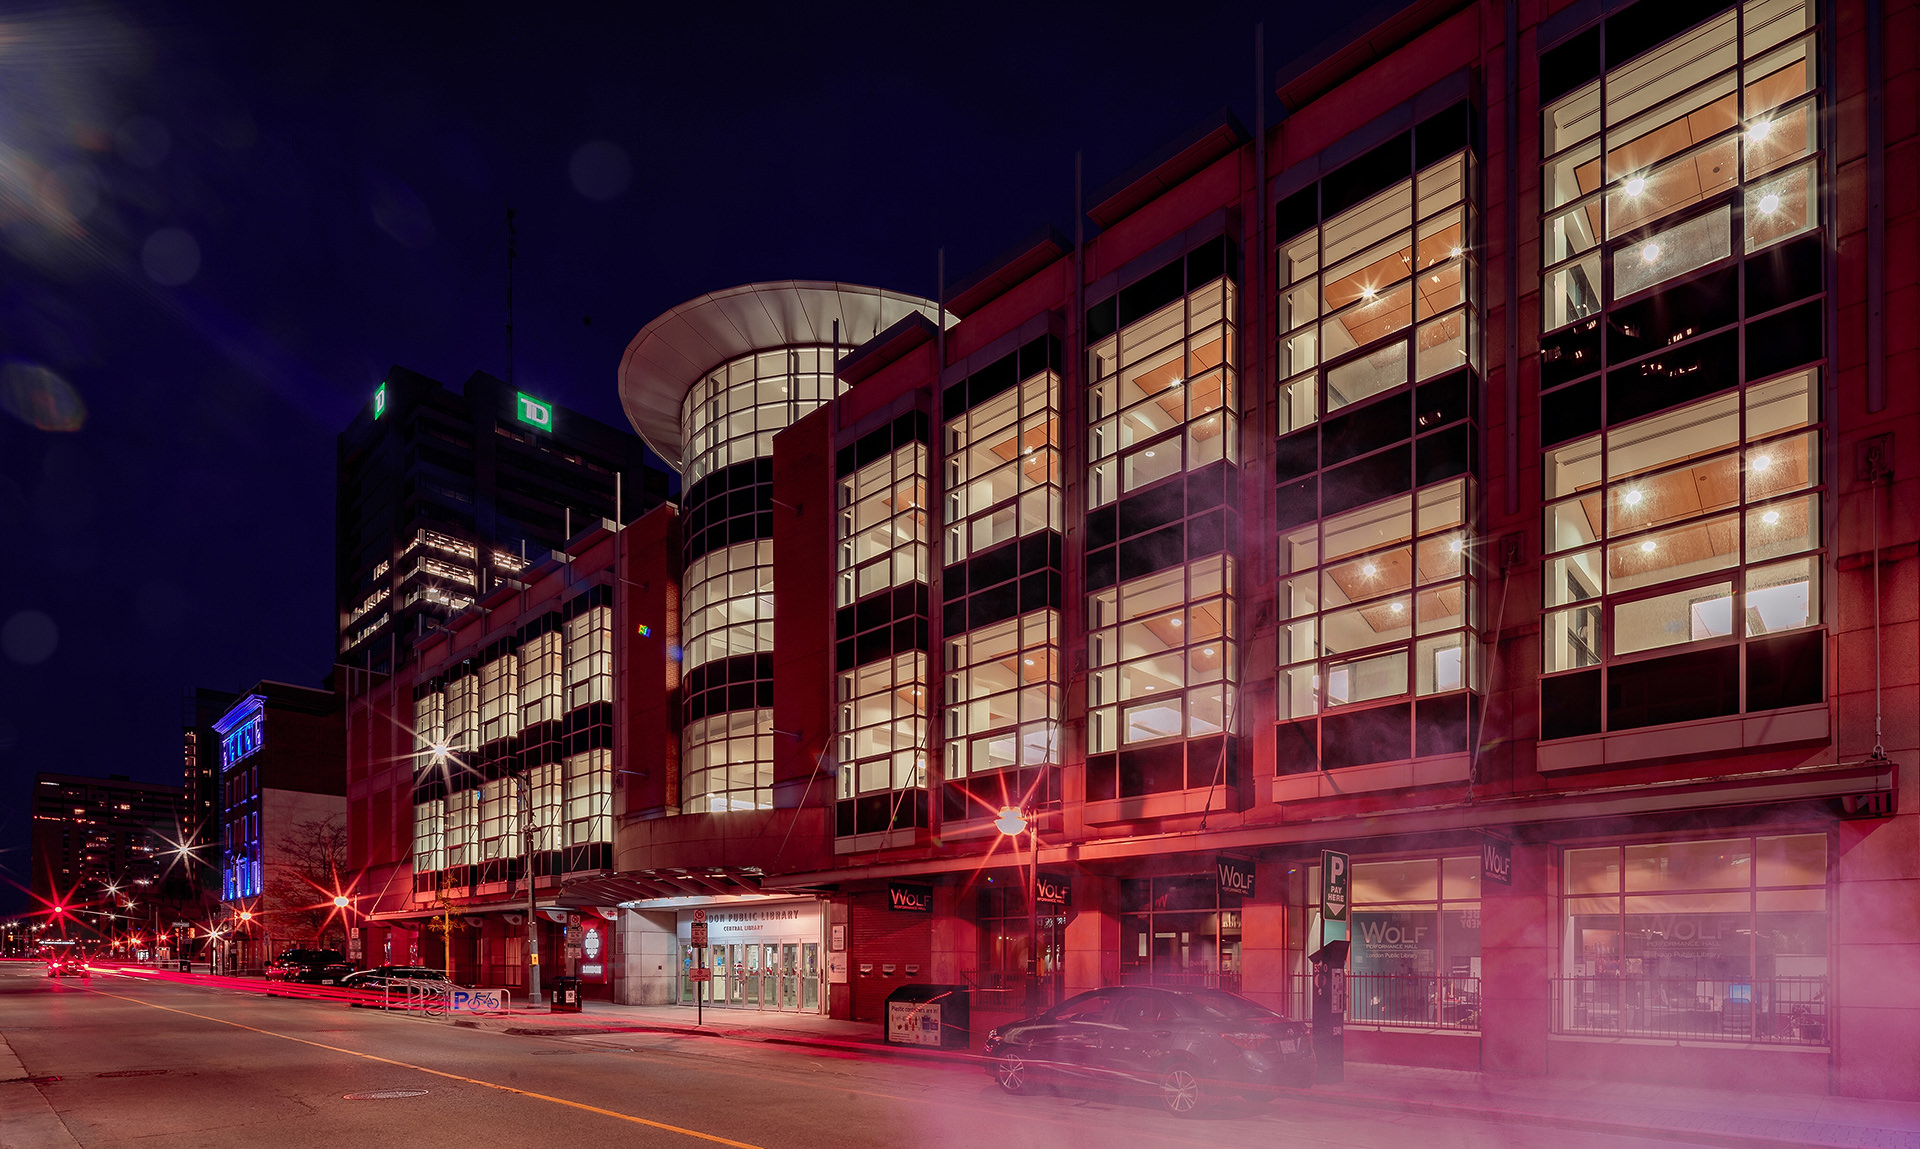 Extra creative edit of night photo at Central Library and Dundas Street.